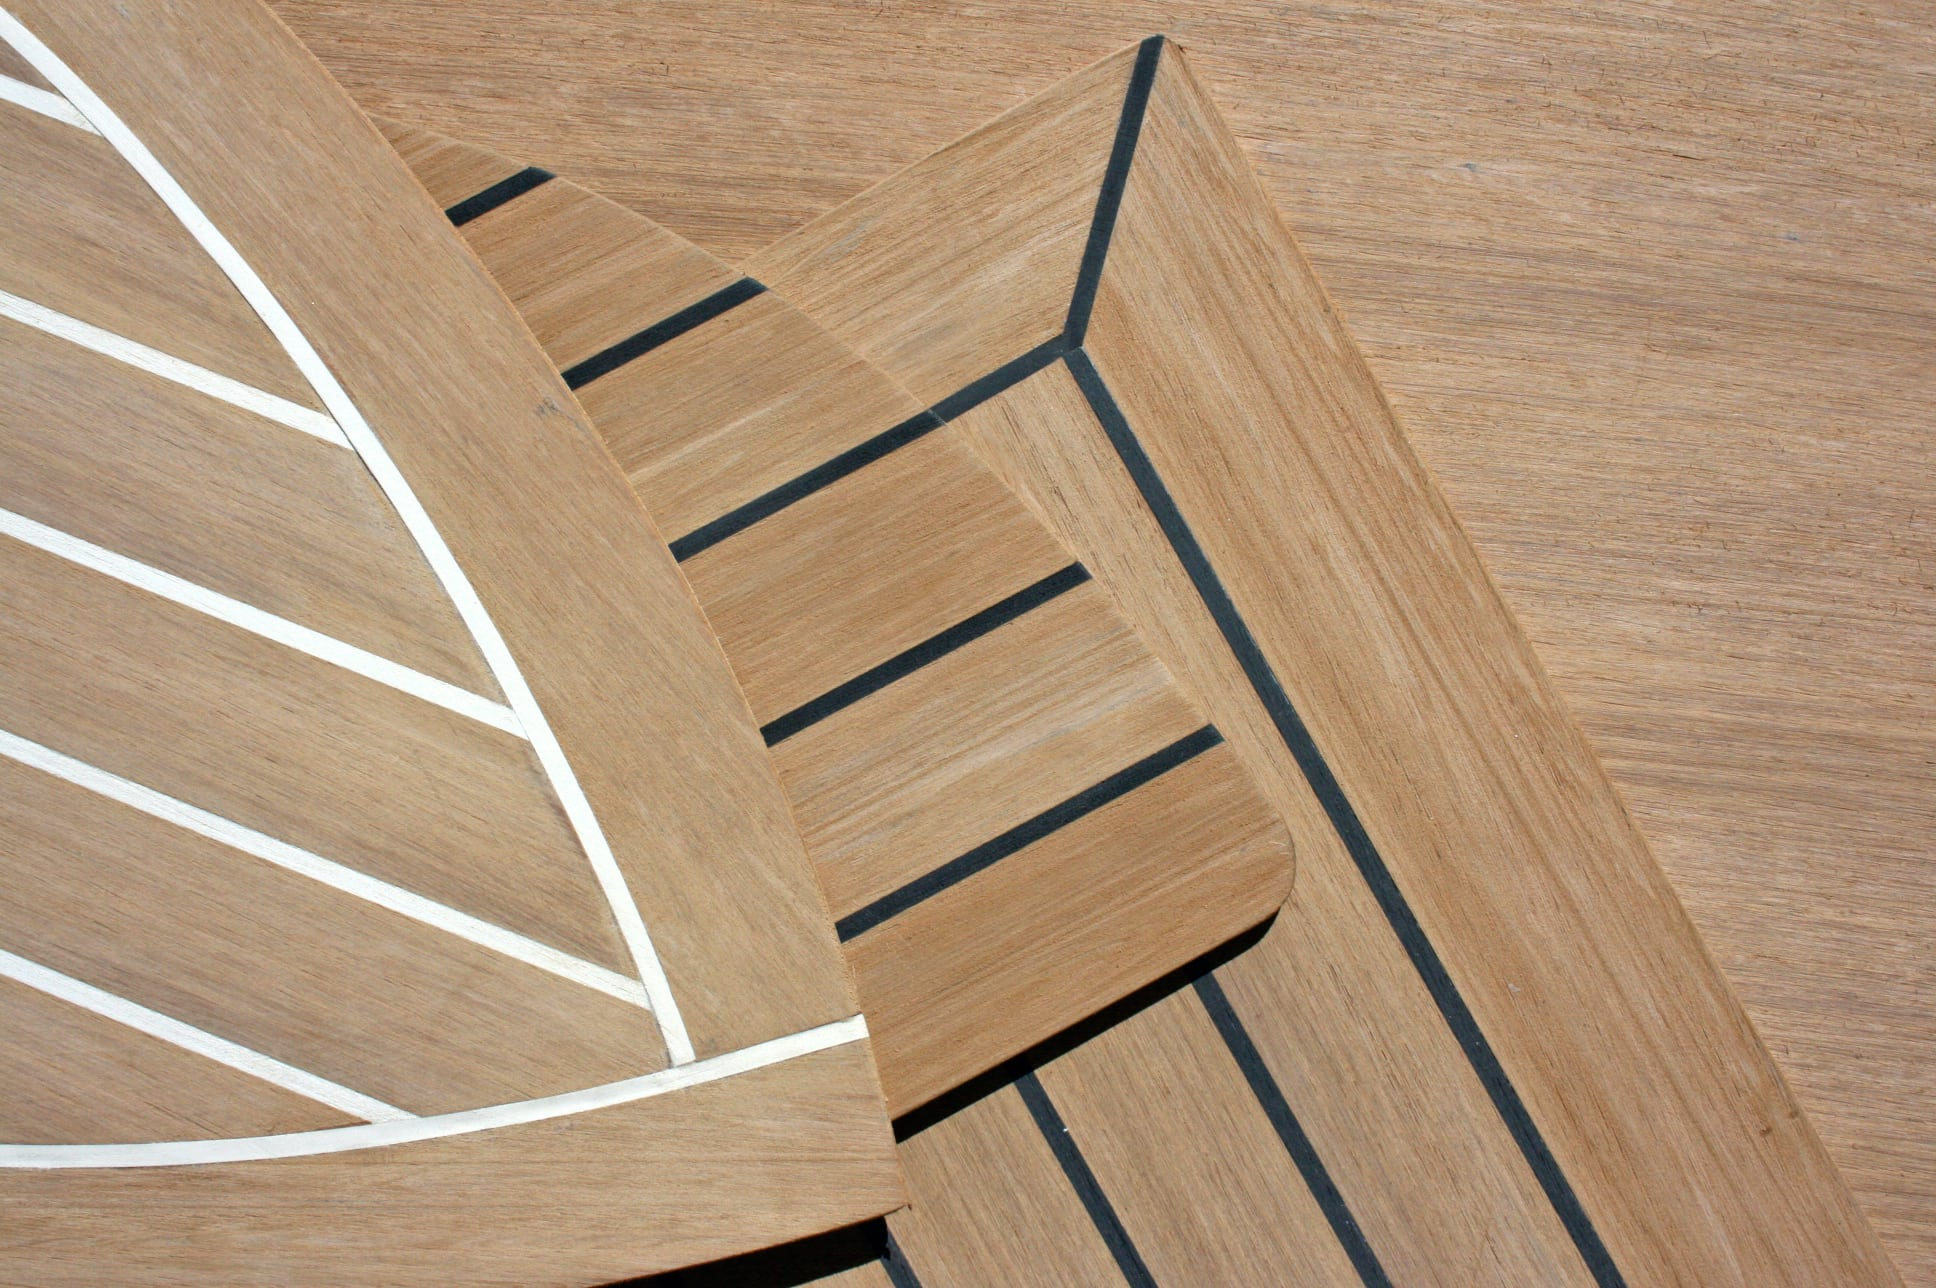 Rigid synthetic marine decking co-extruded to look and feel like real teak